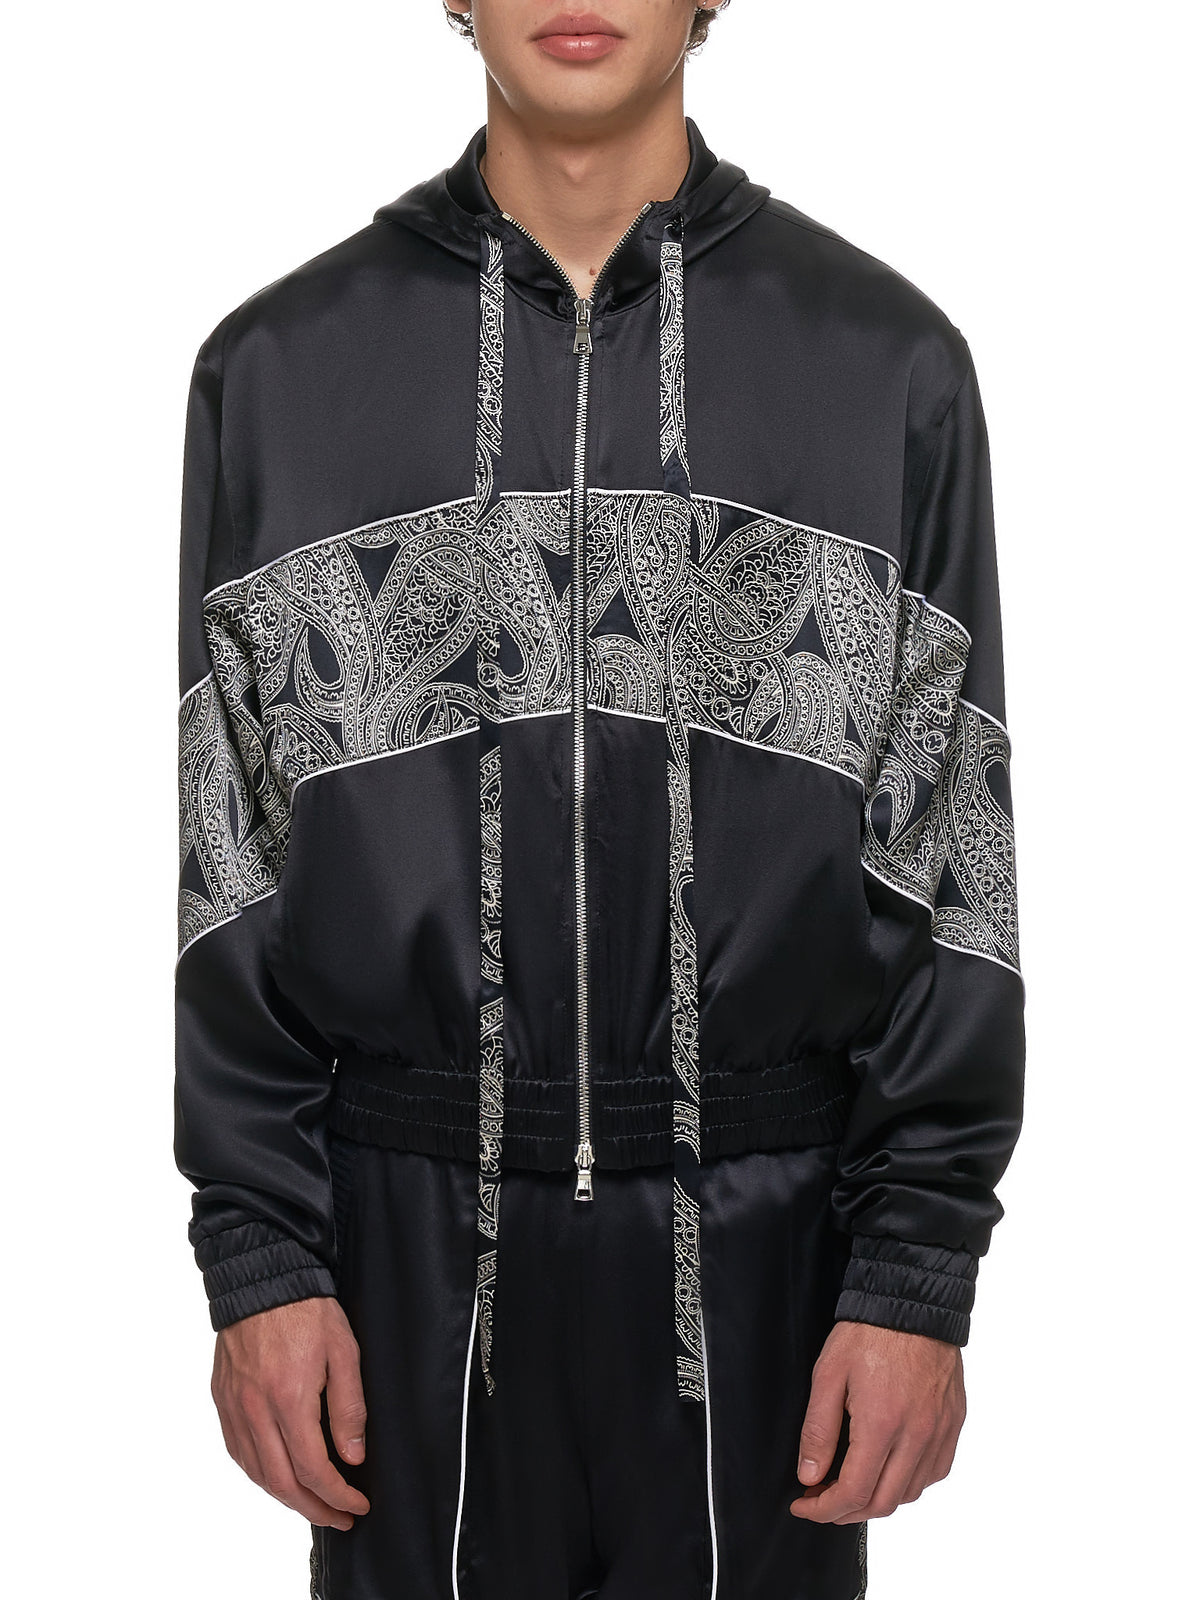 Courtside Jacket (COURTSIDE-JKT-BLK-PAISLY)